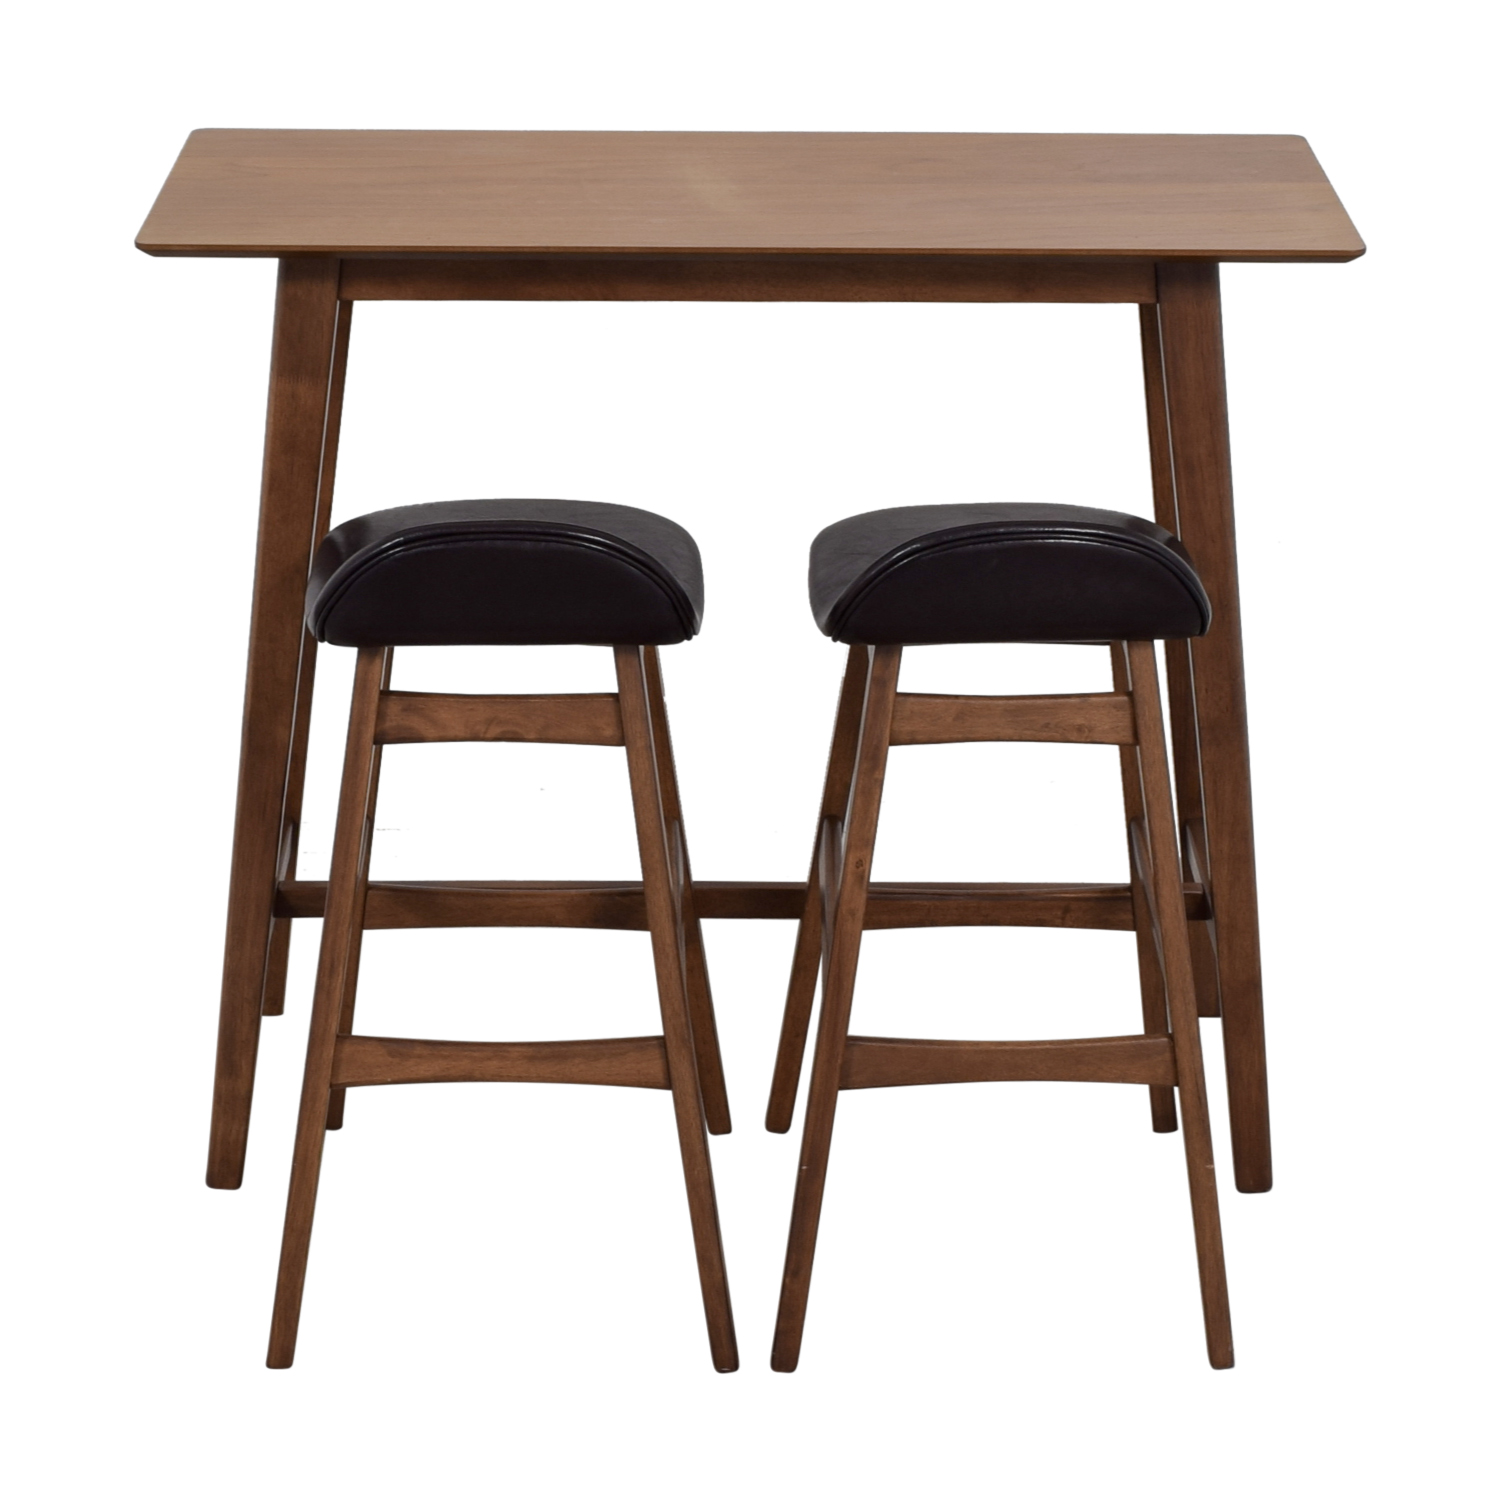 Wood Bar Table and Stools Set second hand